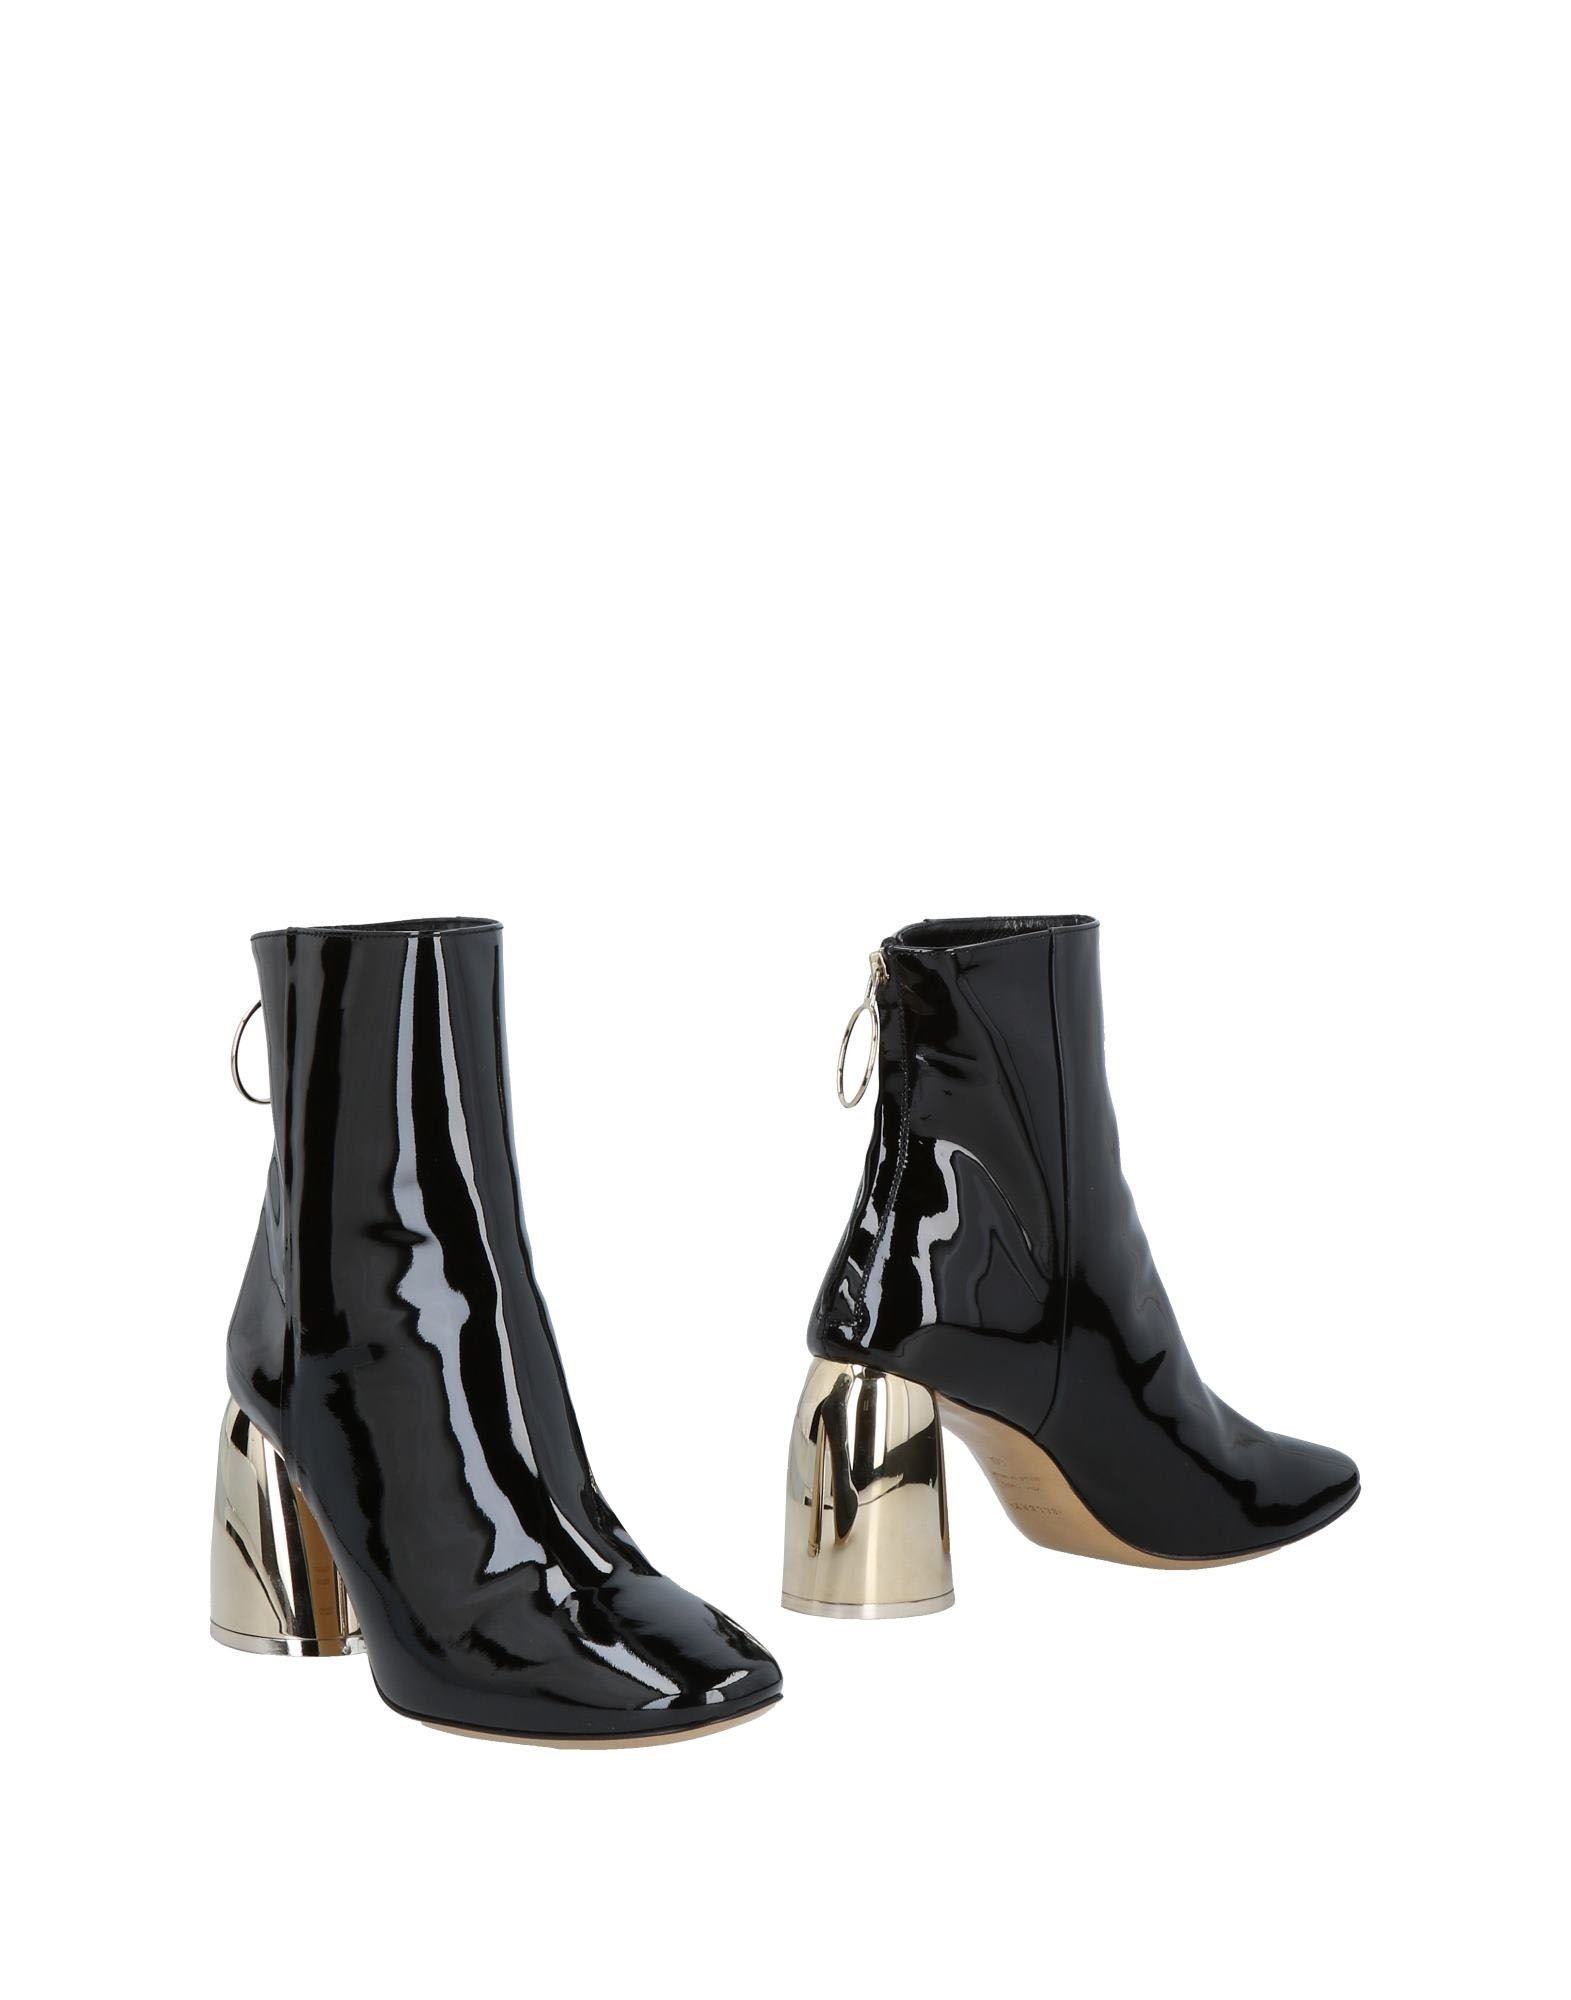 Ellery Ankle Boot - Women Ellery Ankle Boots - online on  Canada - Boots 11489405XD 1a8589